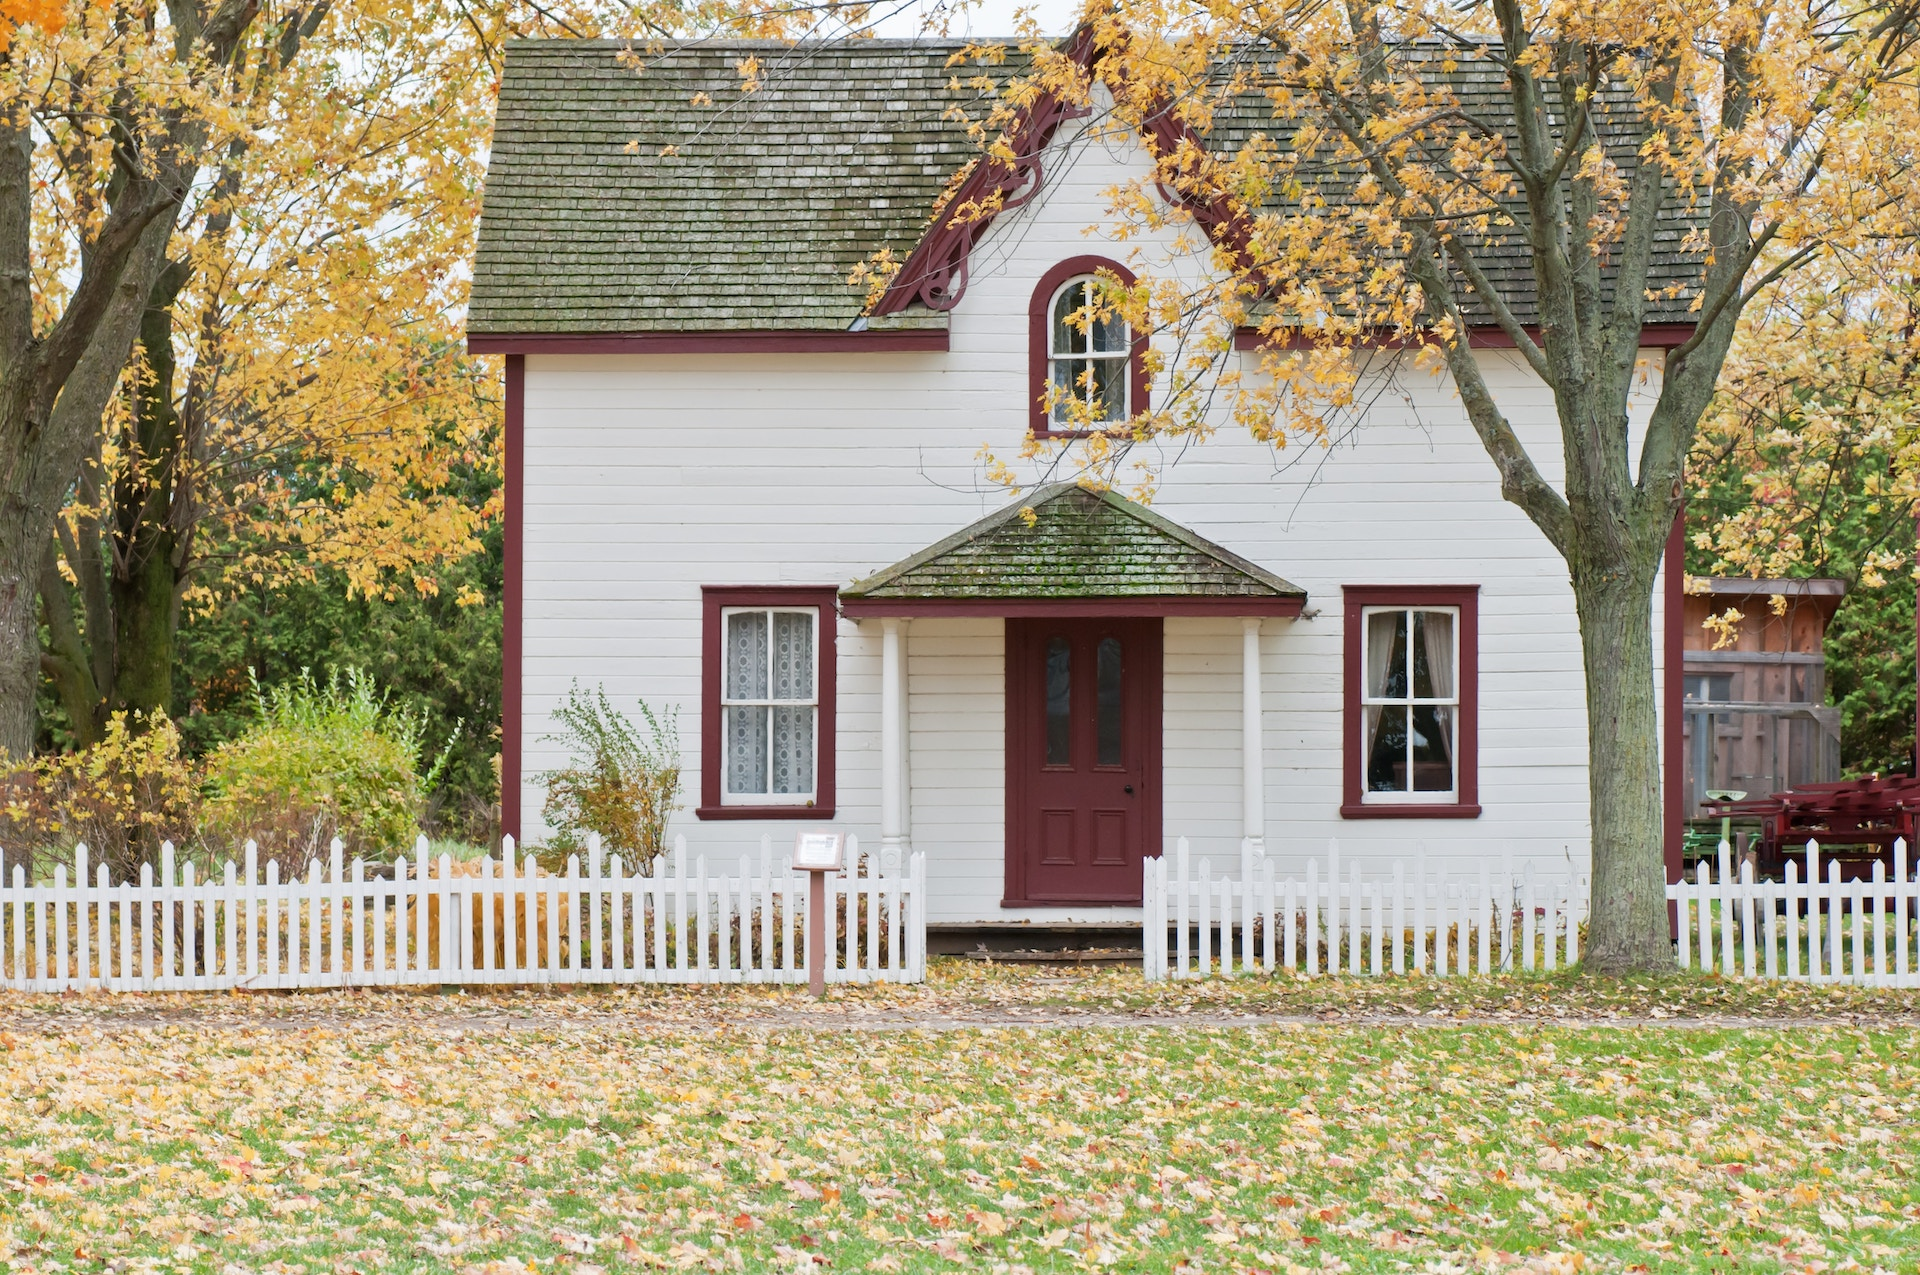 What If You Want A Reverse Mortgage But Don't Qualify For Enough Money?